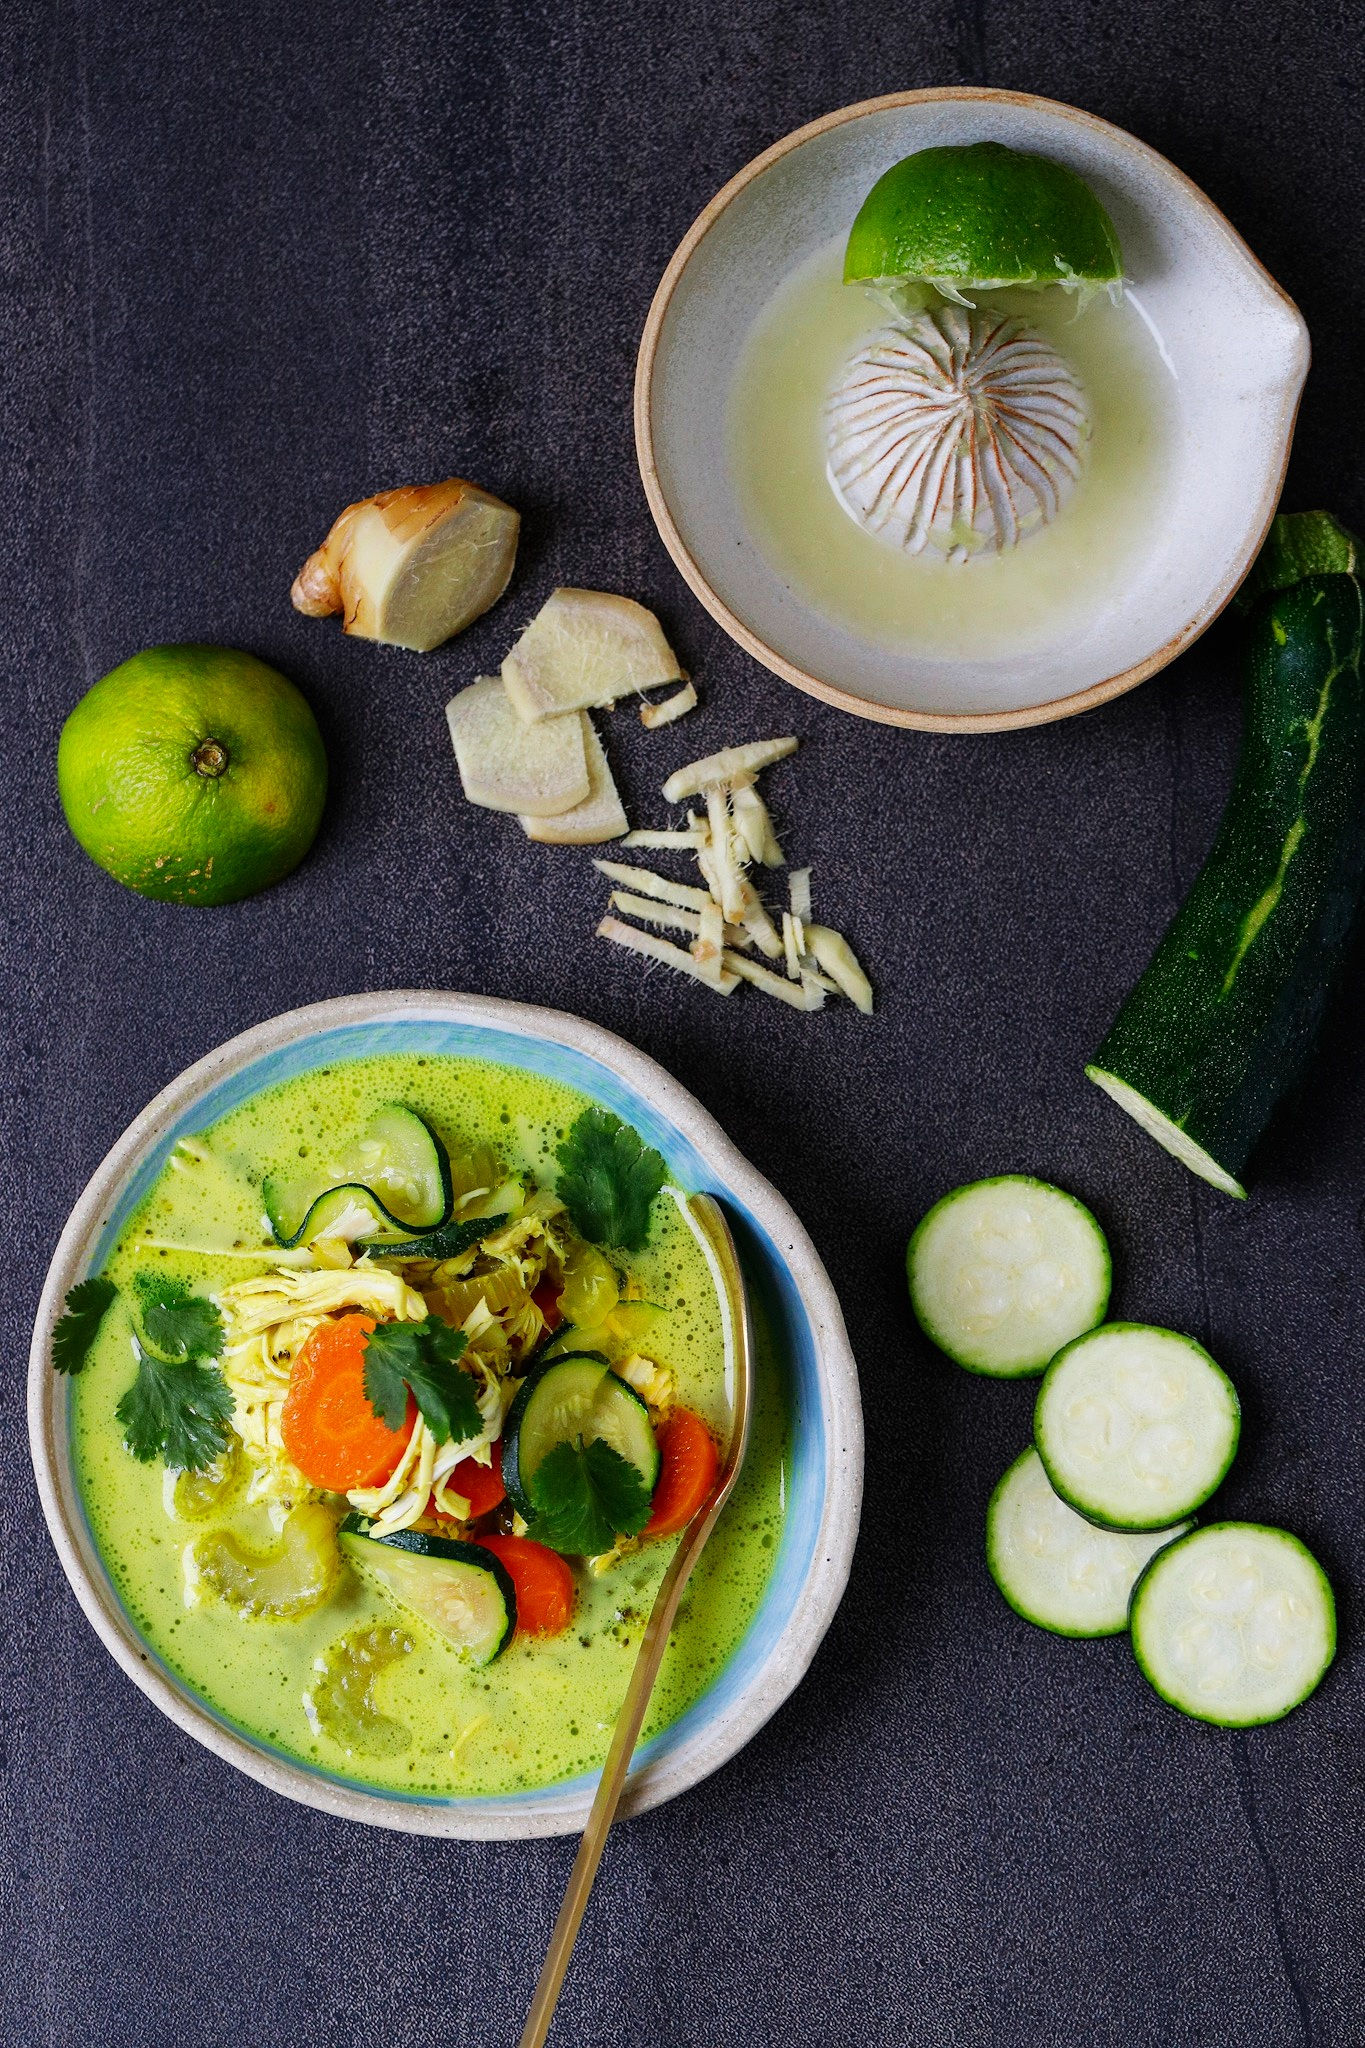 Lemongrass%2C+Ginger+and+Lime+Chicken+Soup+by+Sheridan+Joy.jpg